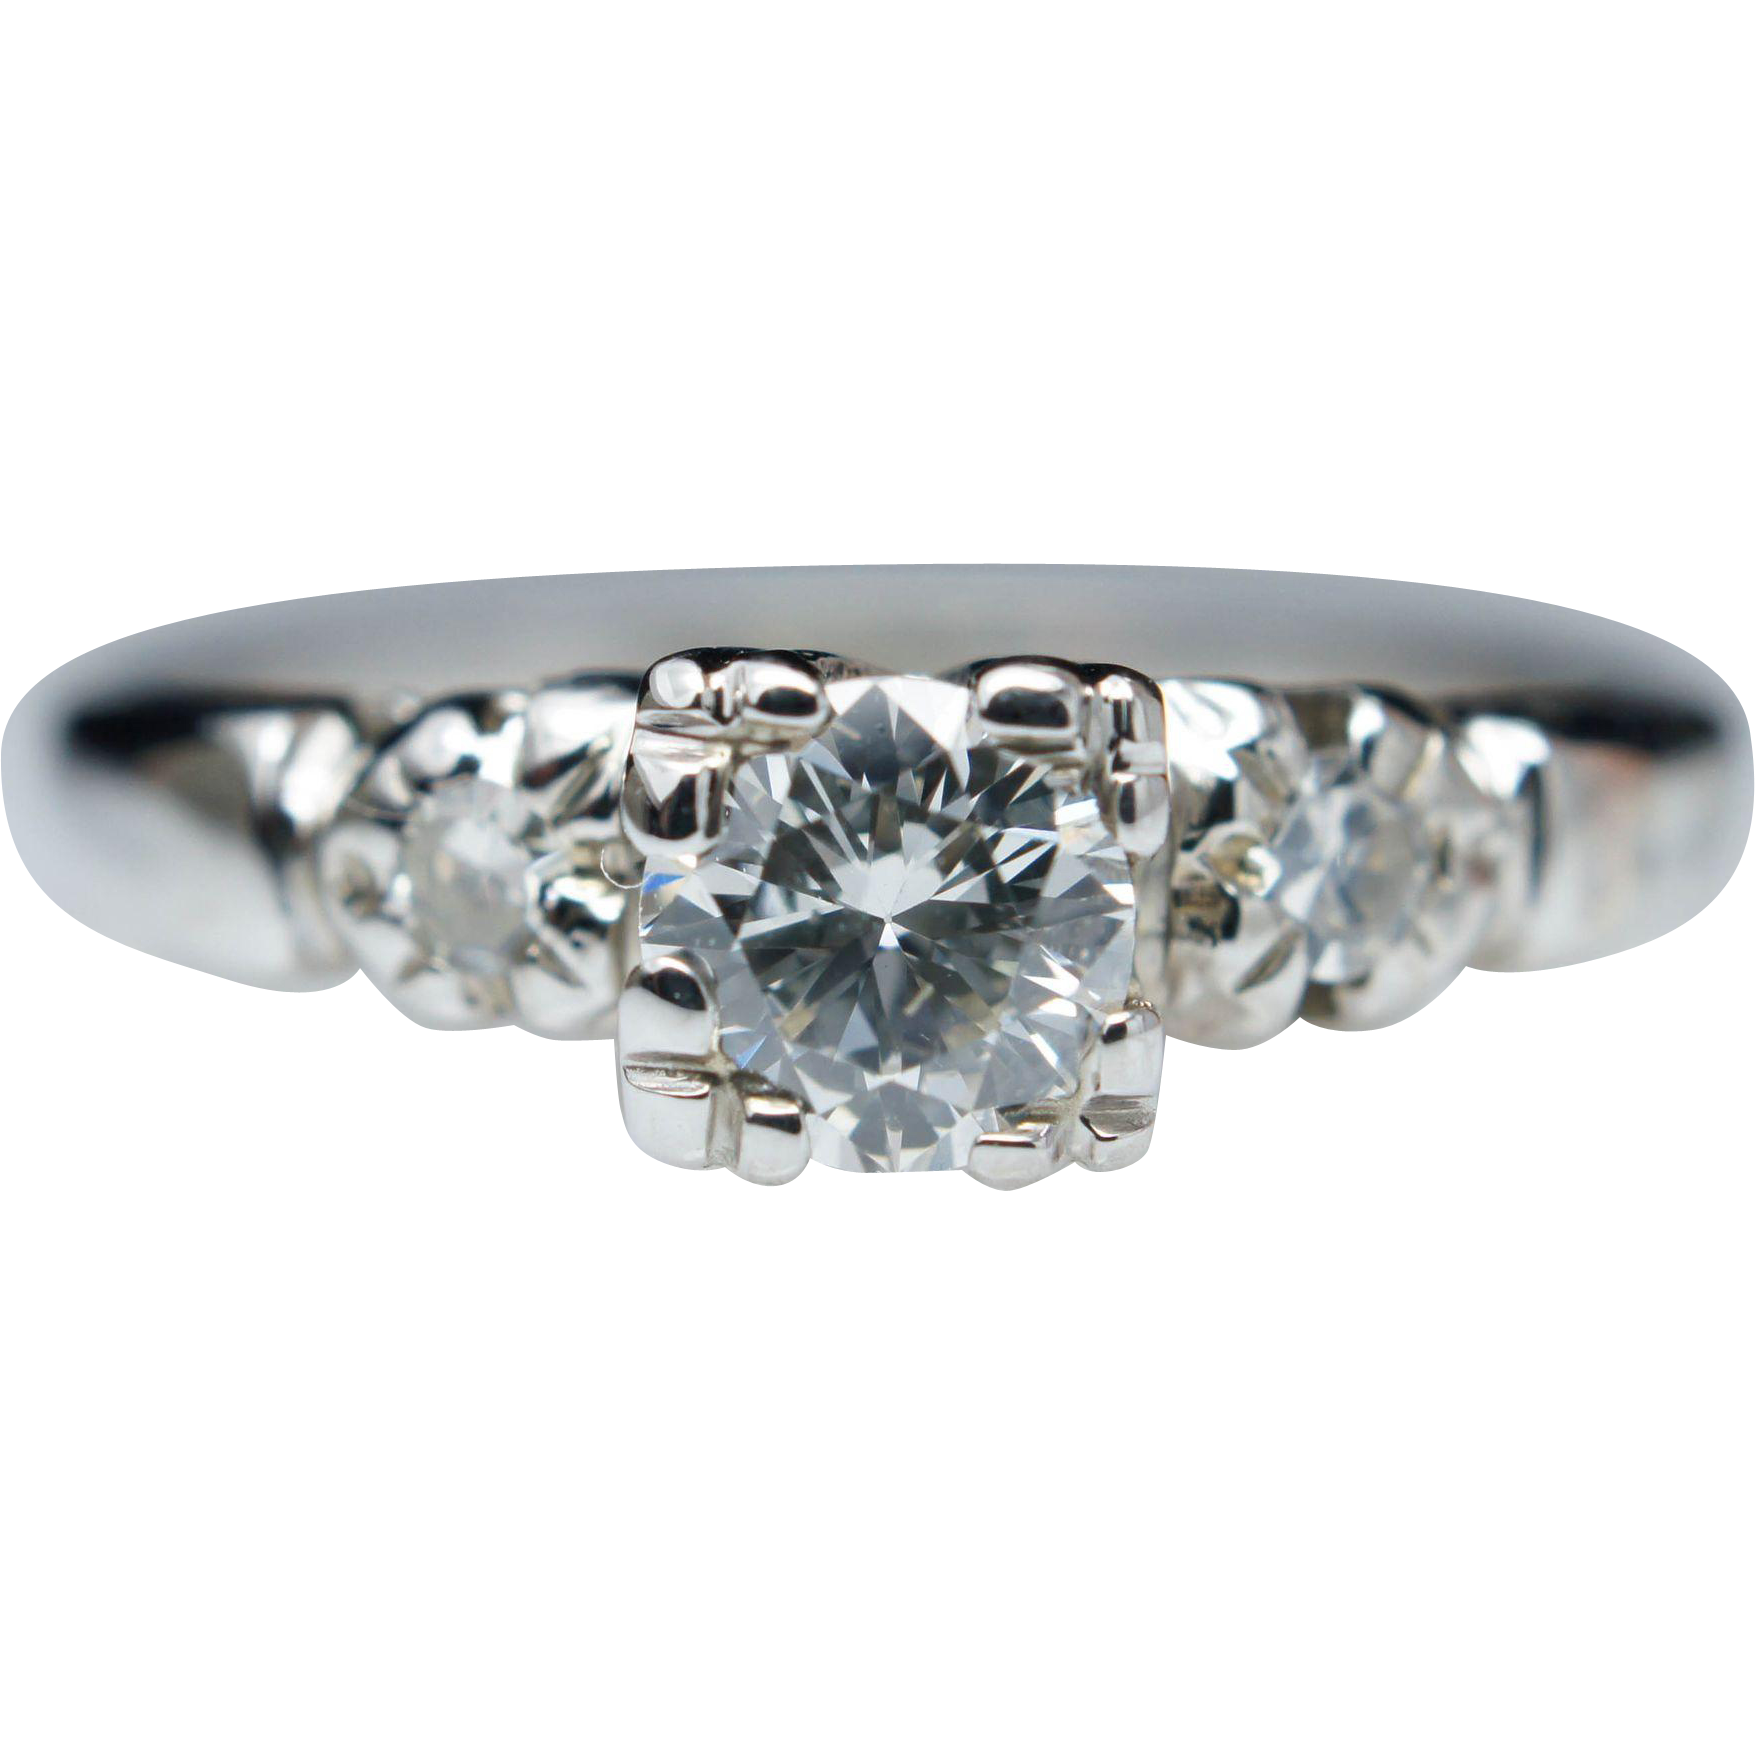 Vintage 1940s Art Deco Diamond Engagement Ring in 18k White Gold